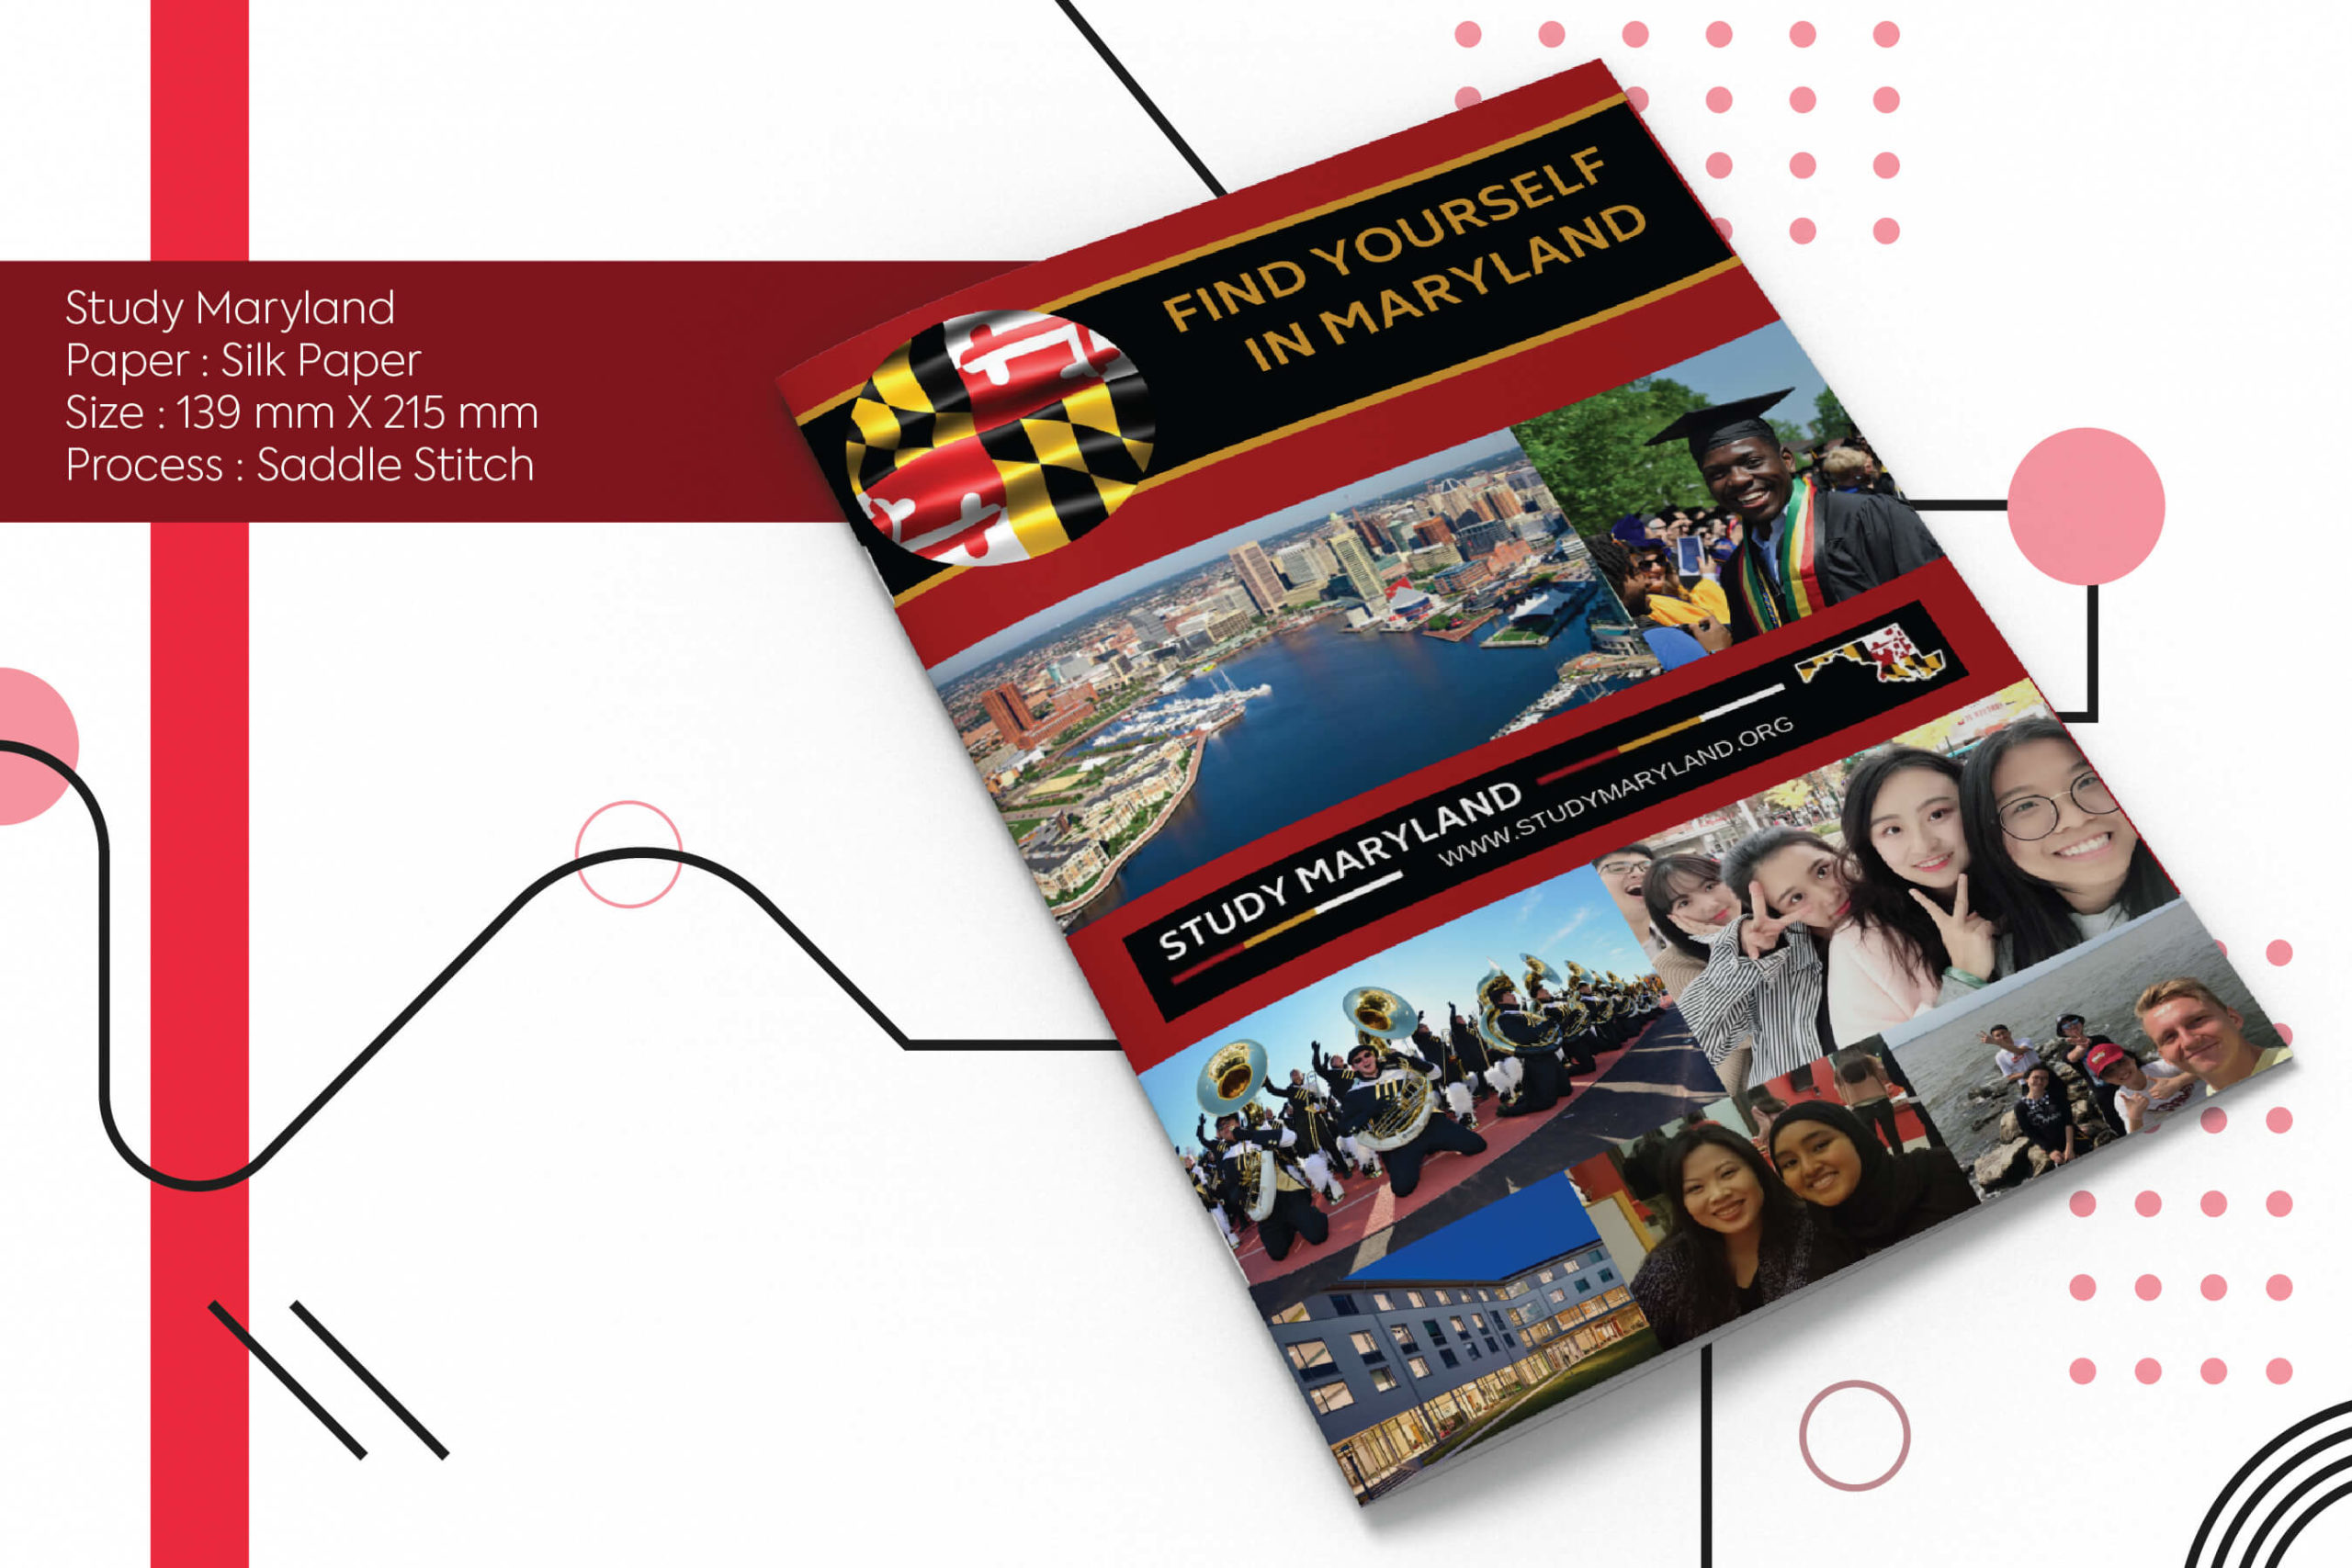 Study Maryland, cost effective printing, offset printing, digital printing, global shipping,